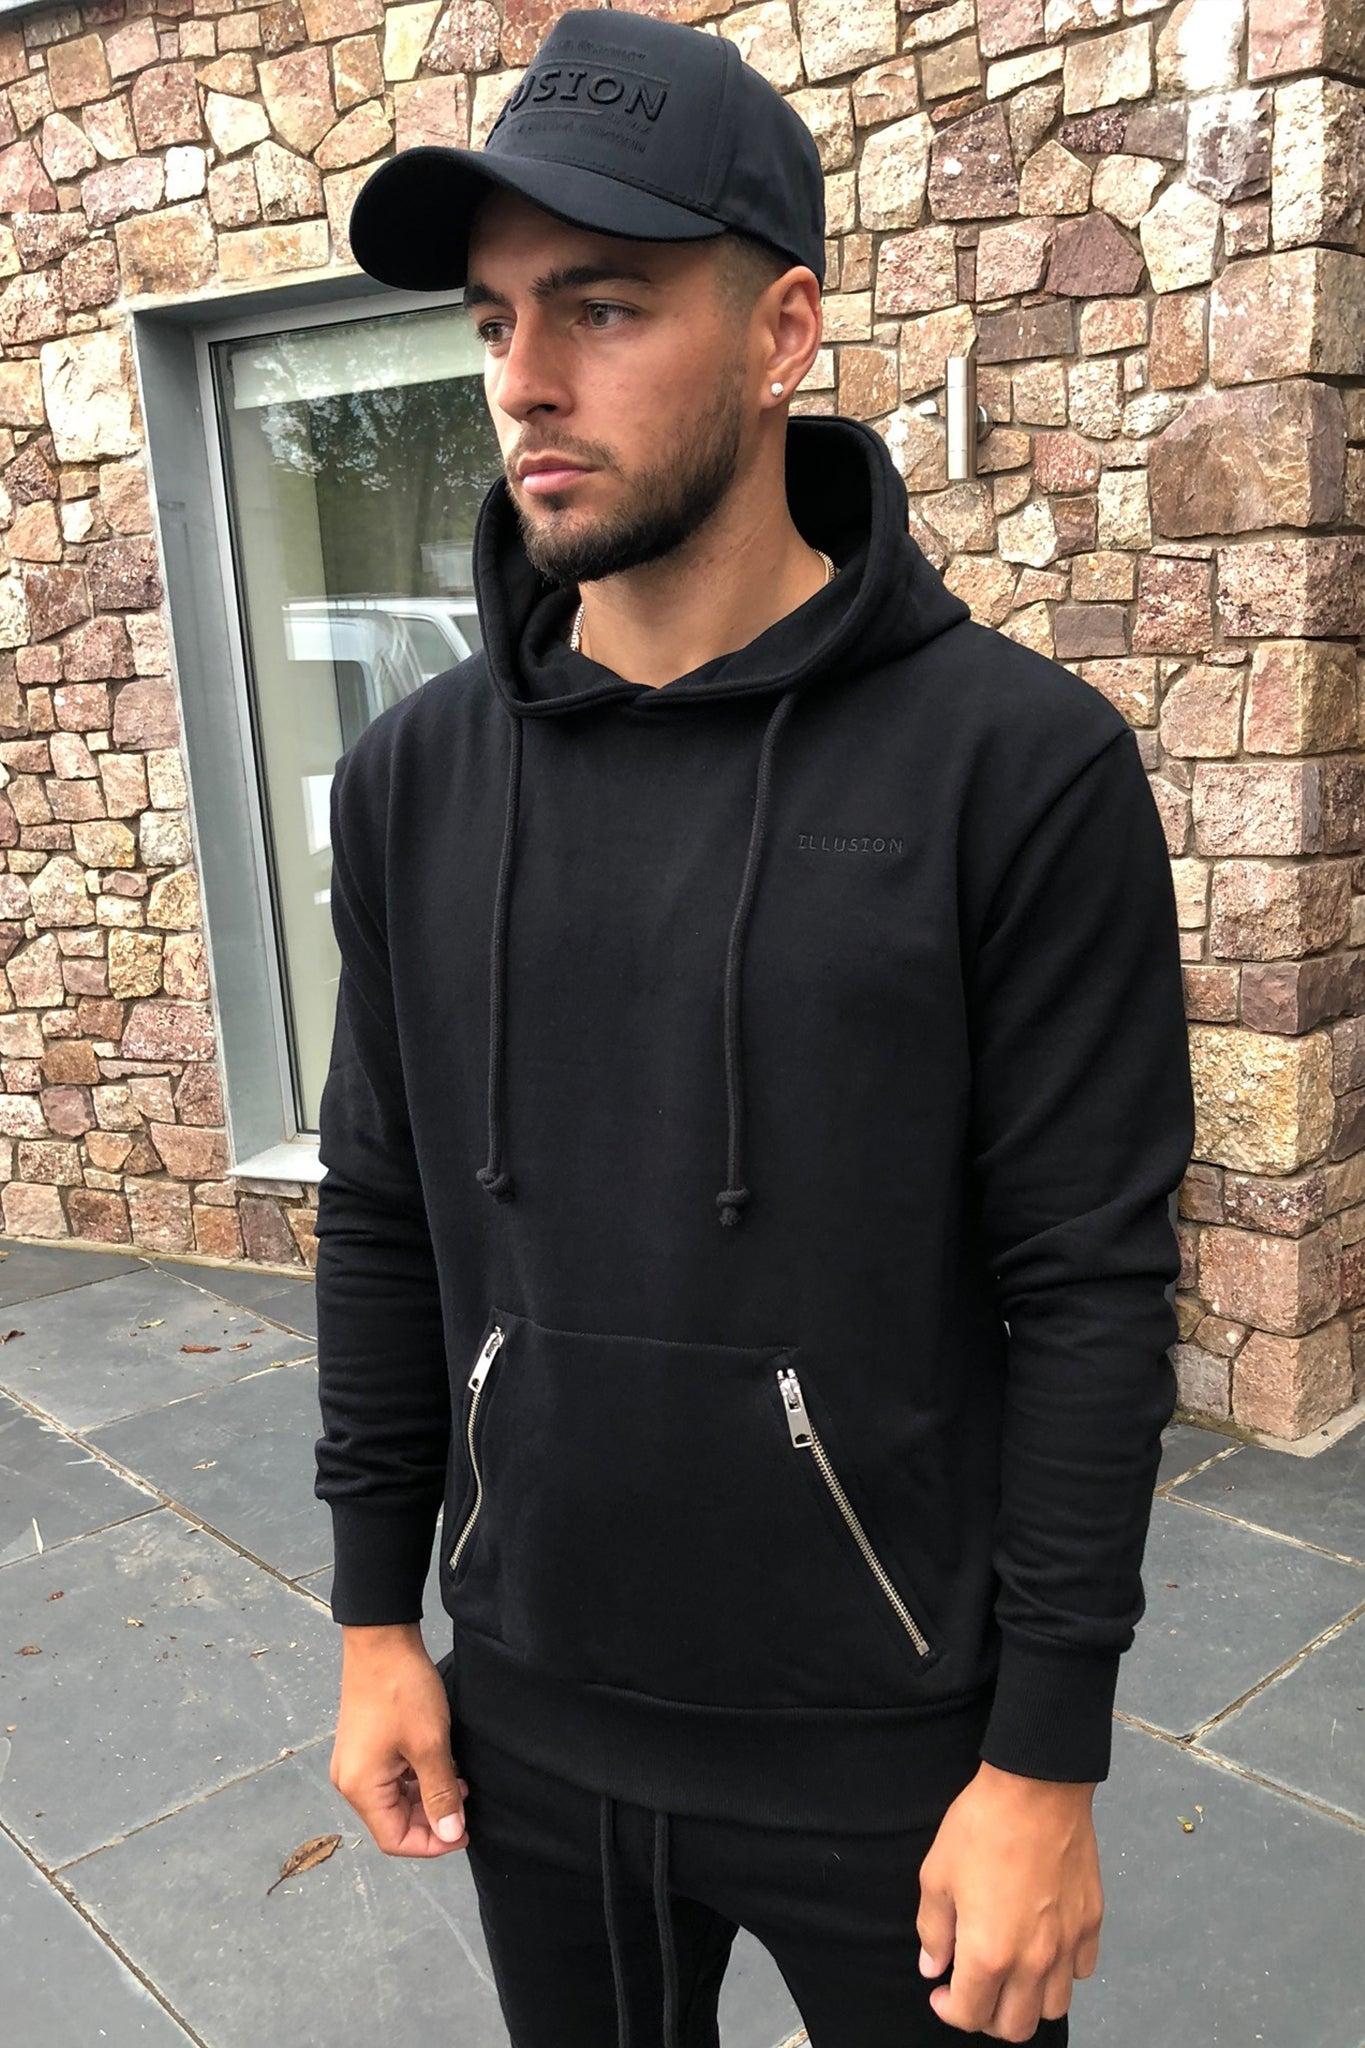 BLACKOUT HOODIE - Illusion Attire